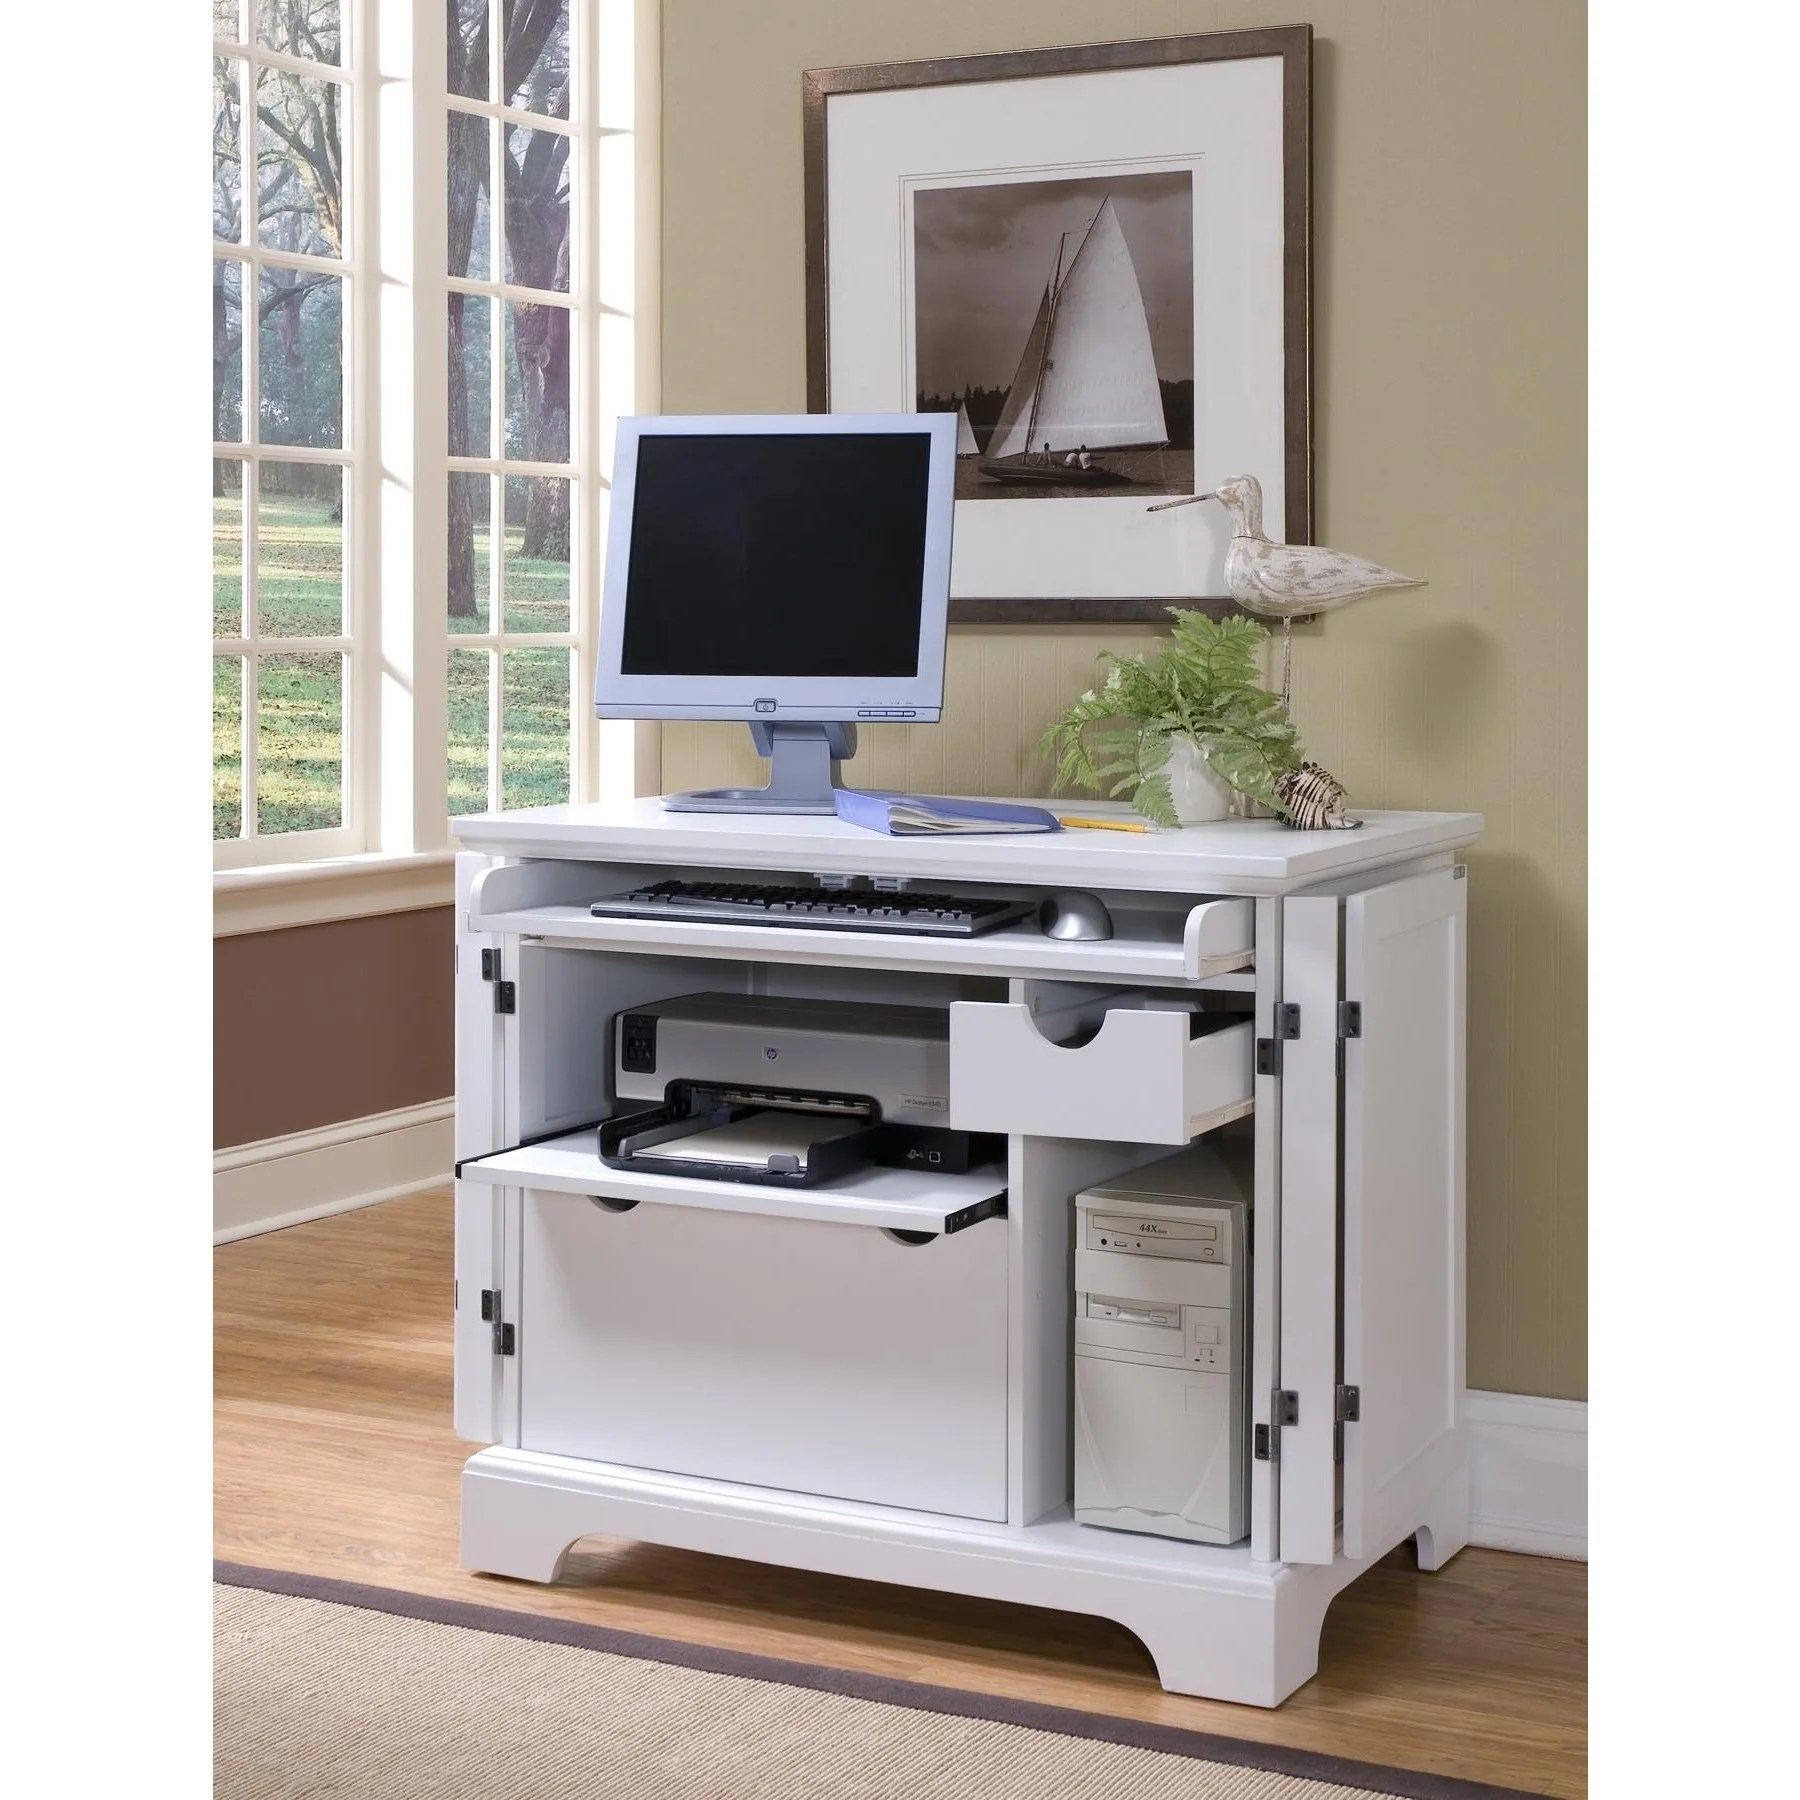 Naples White Compact Computer Desk By Home Styles Overstock 10898533